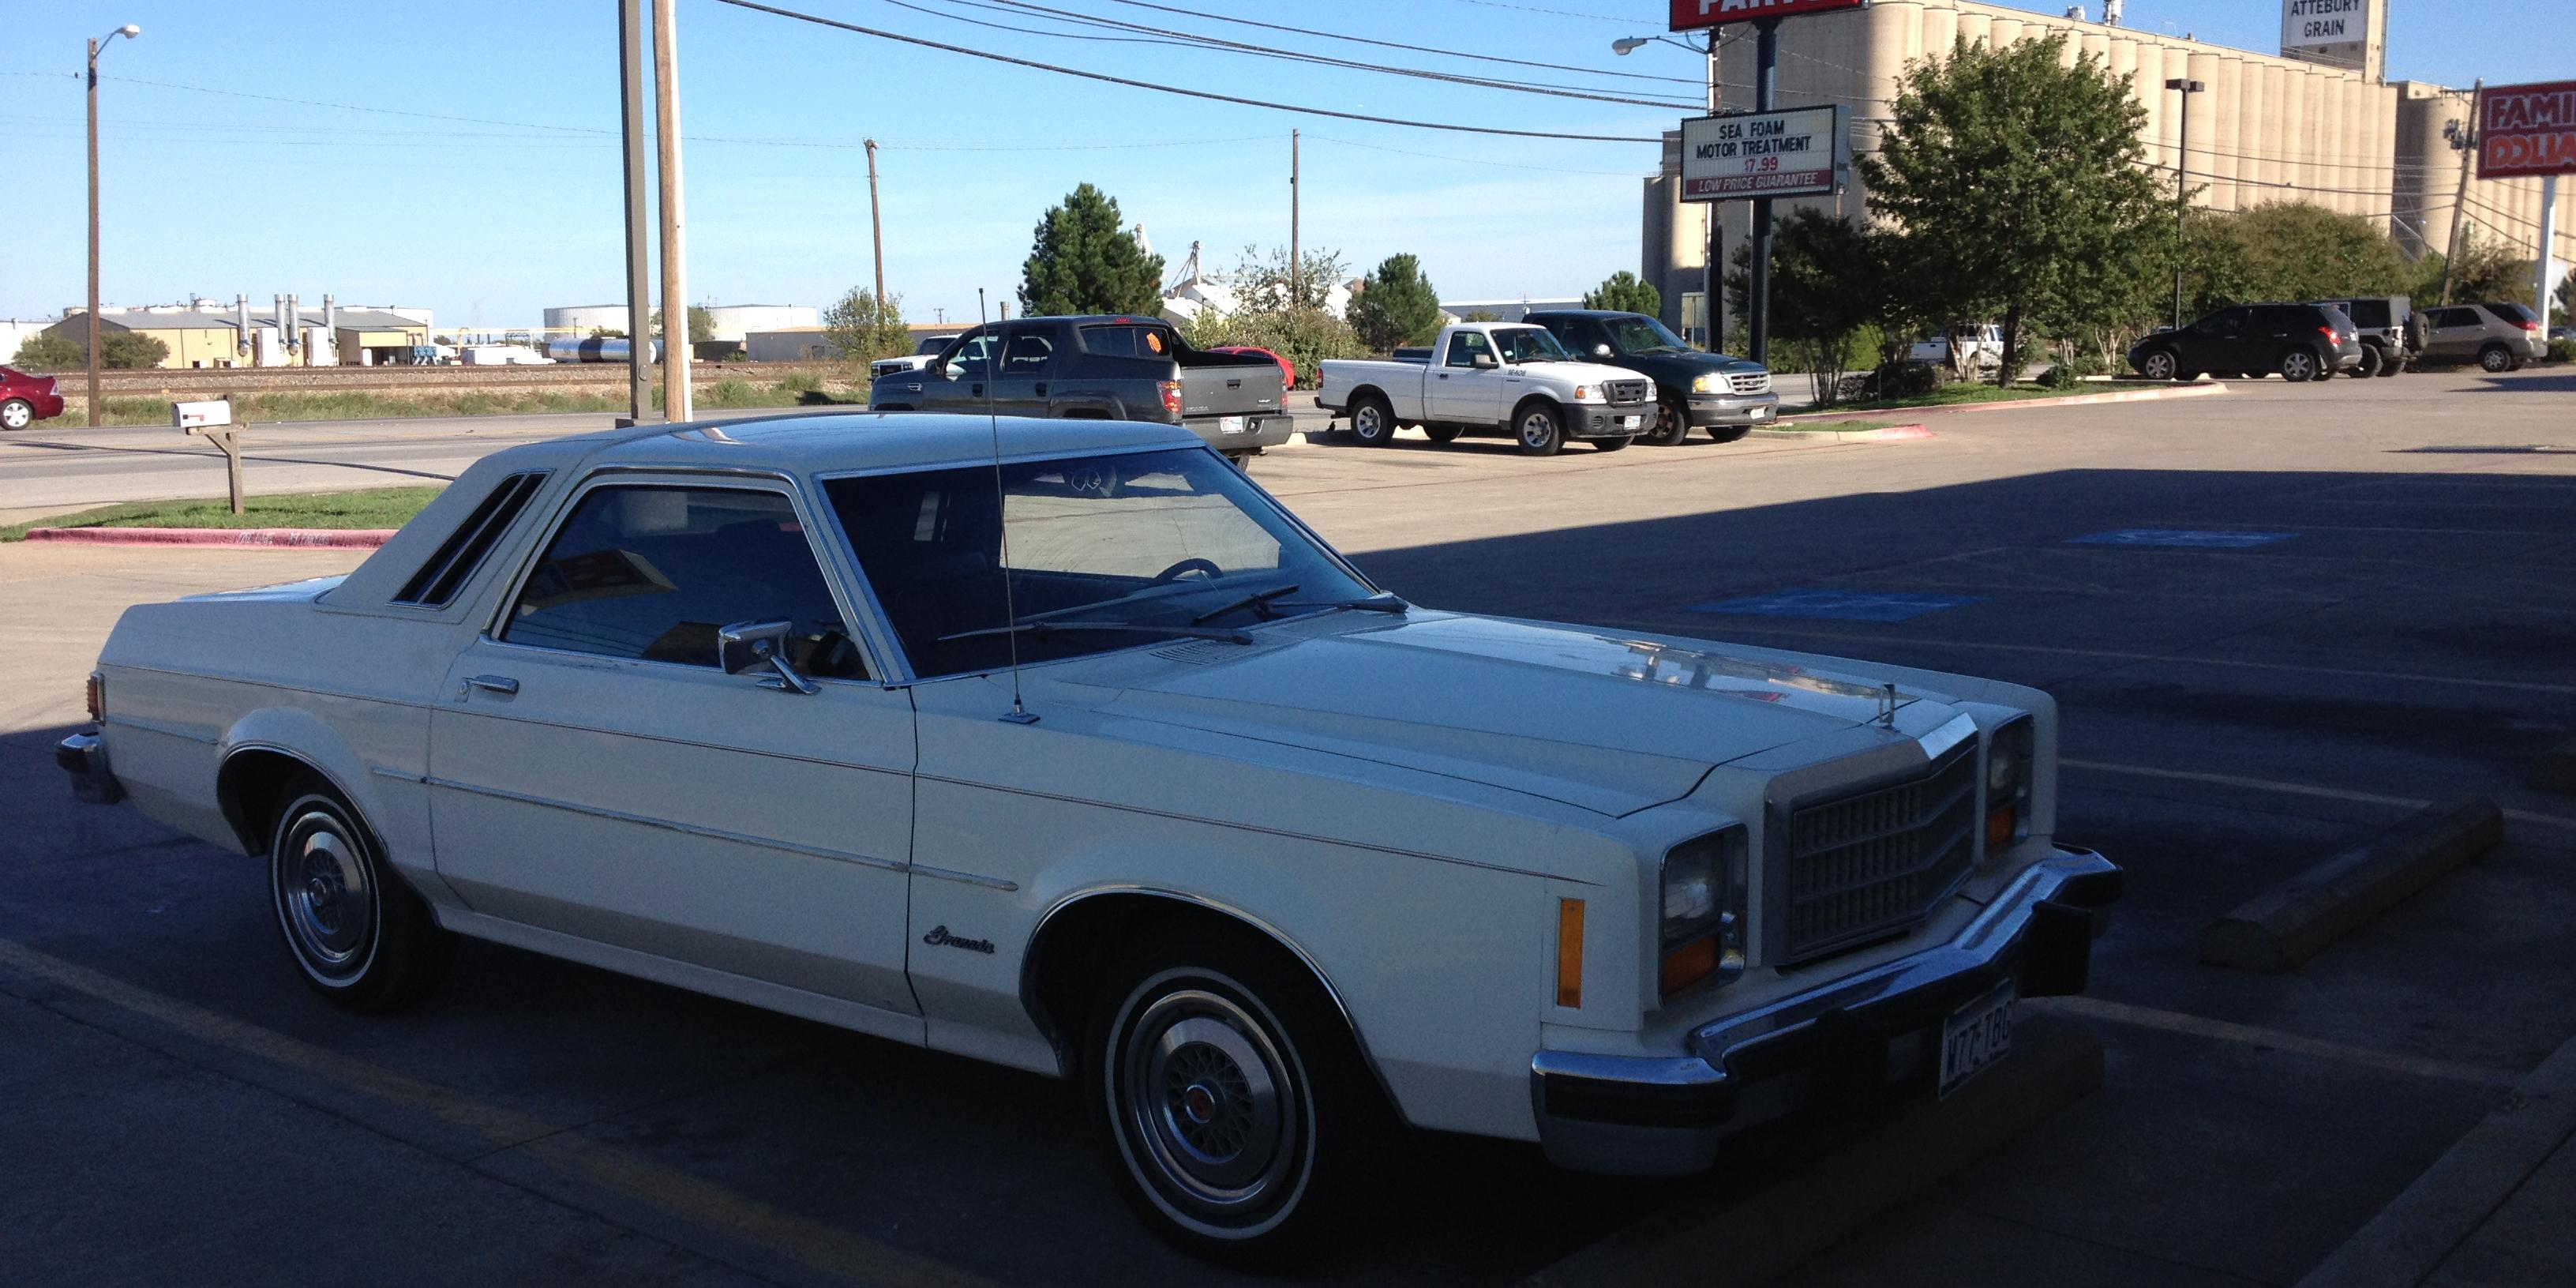 Troy Peterson's 1978 Ford Granada in